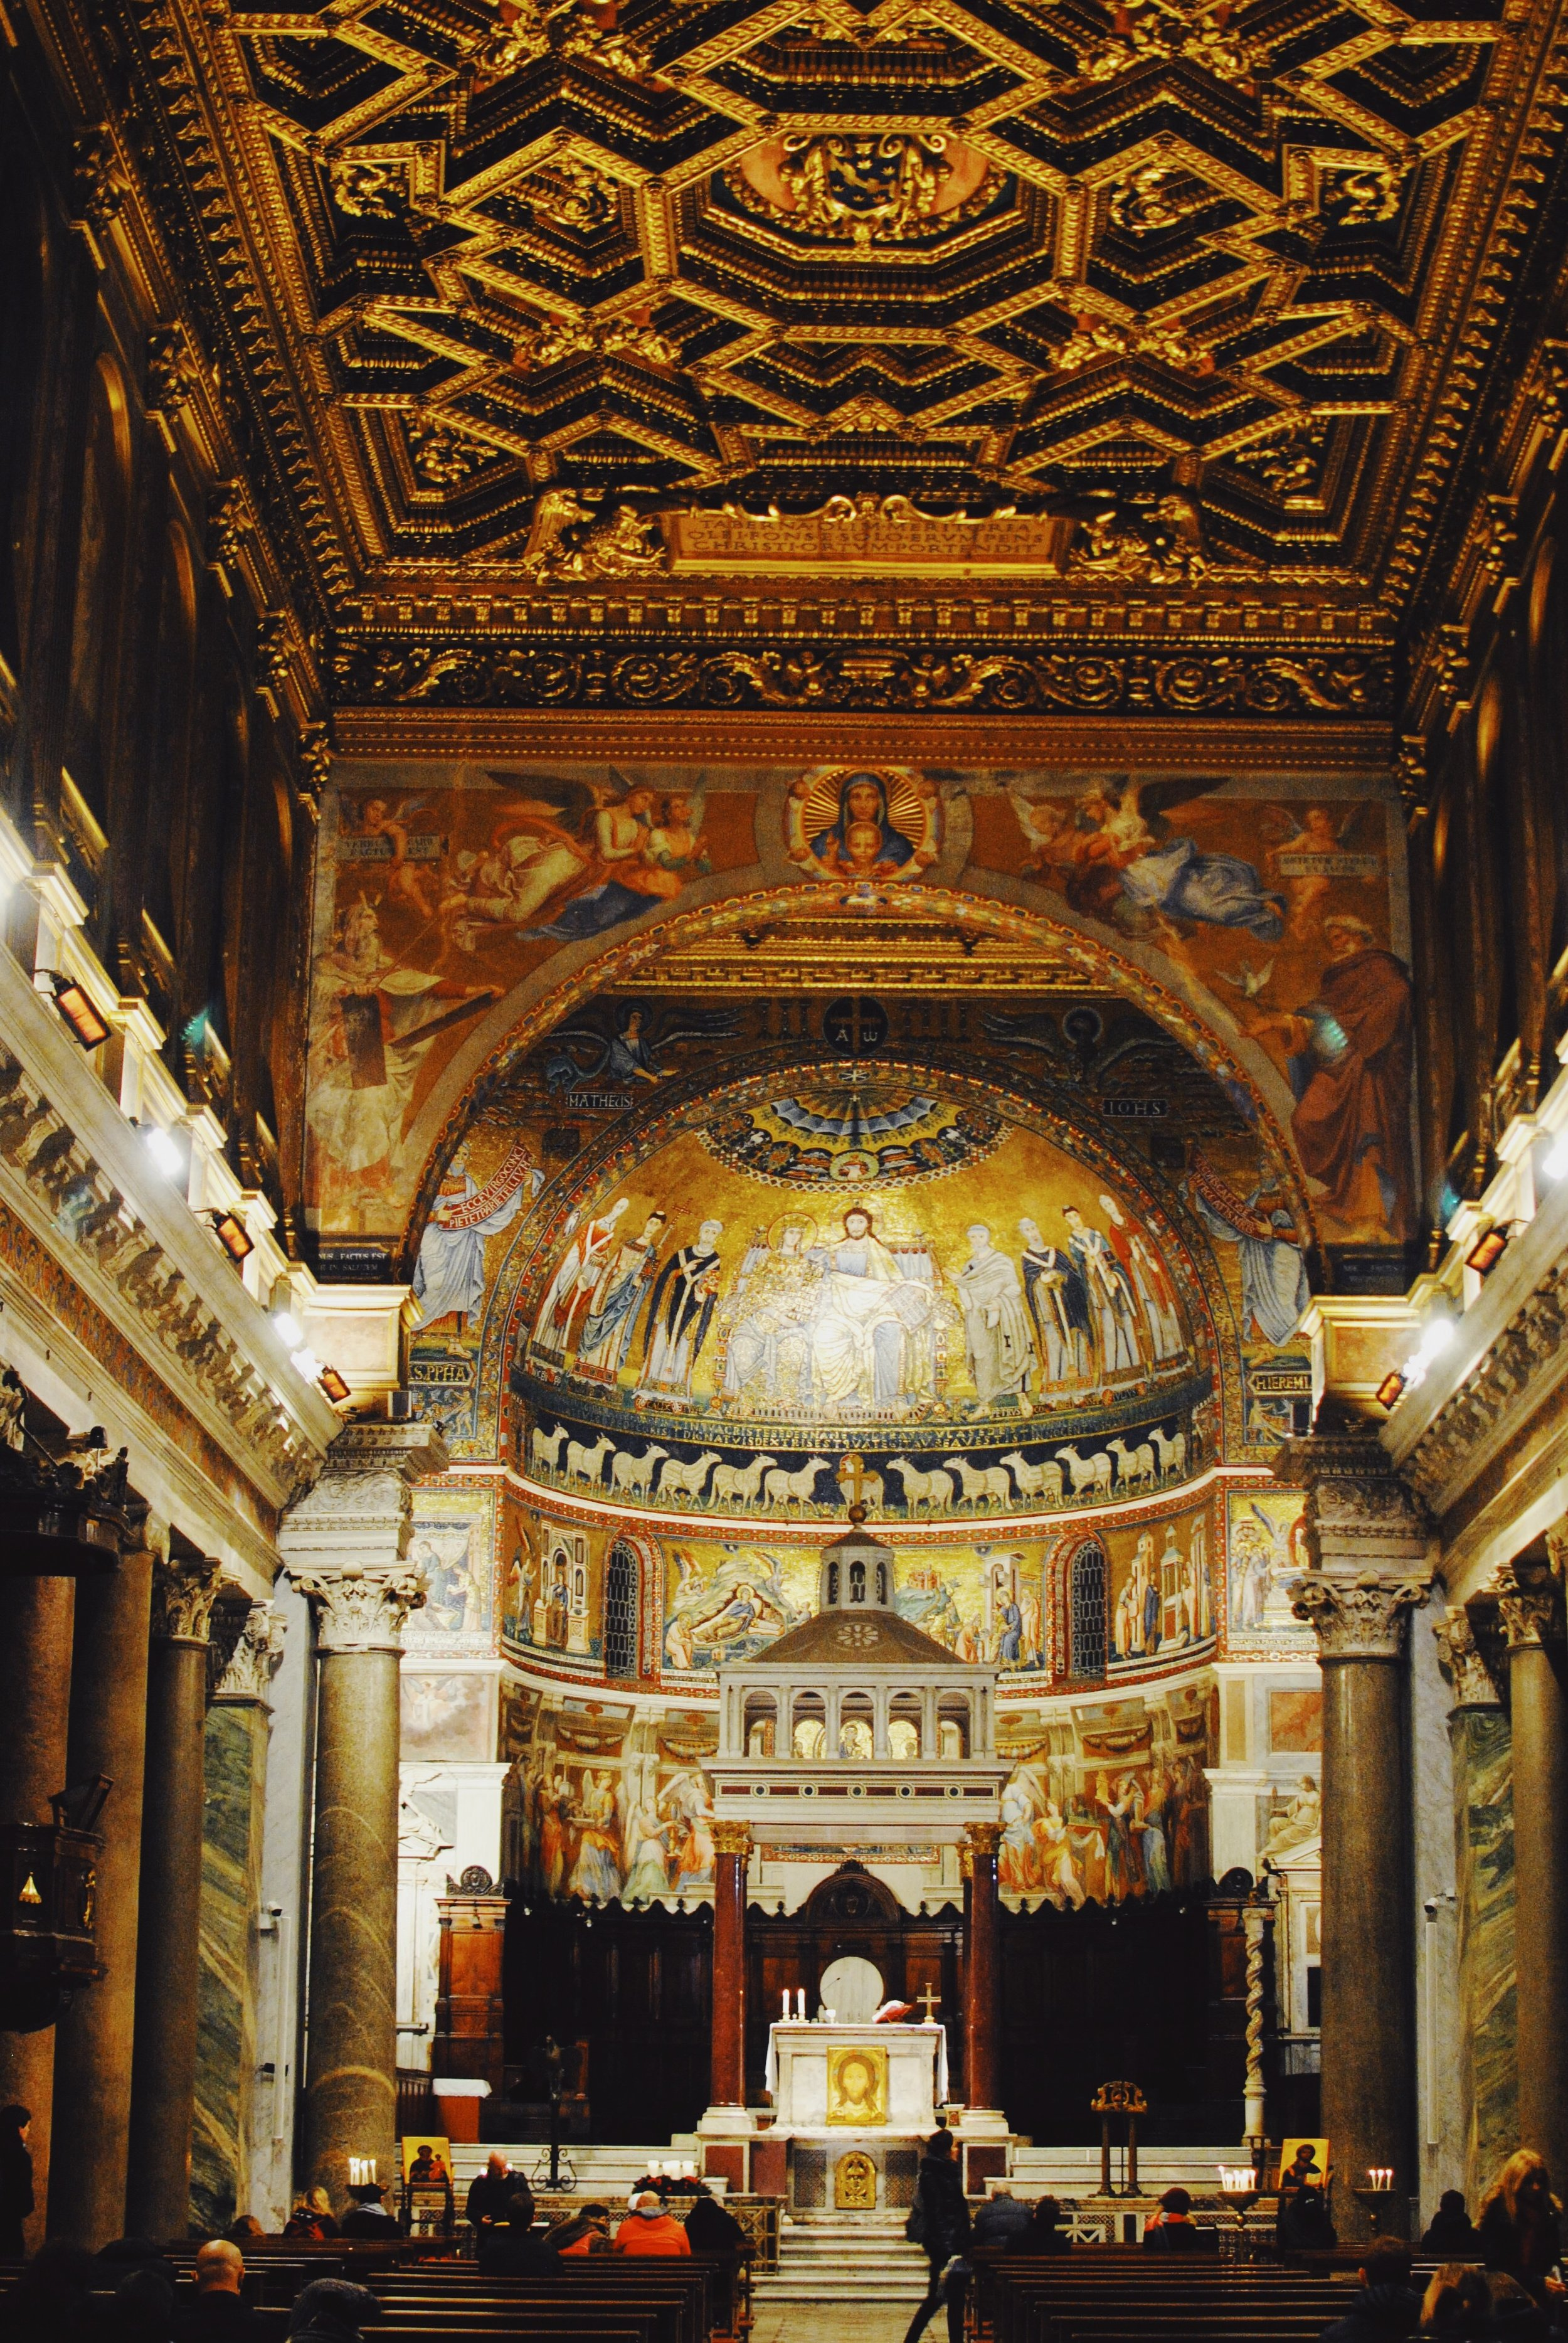 Basilica of Our Lady: The famous mosaics constructed in the 12th and 13th centuries